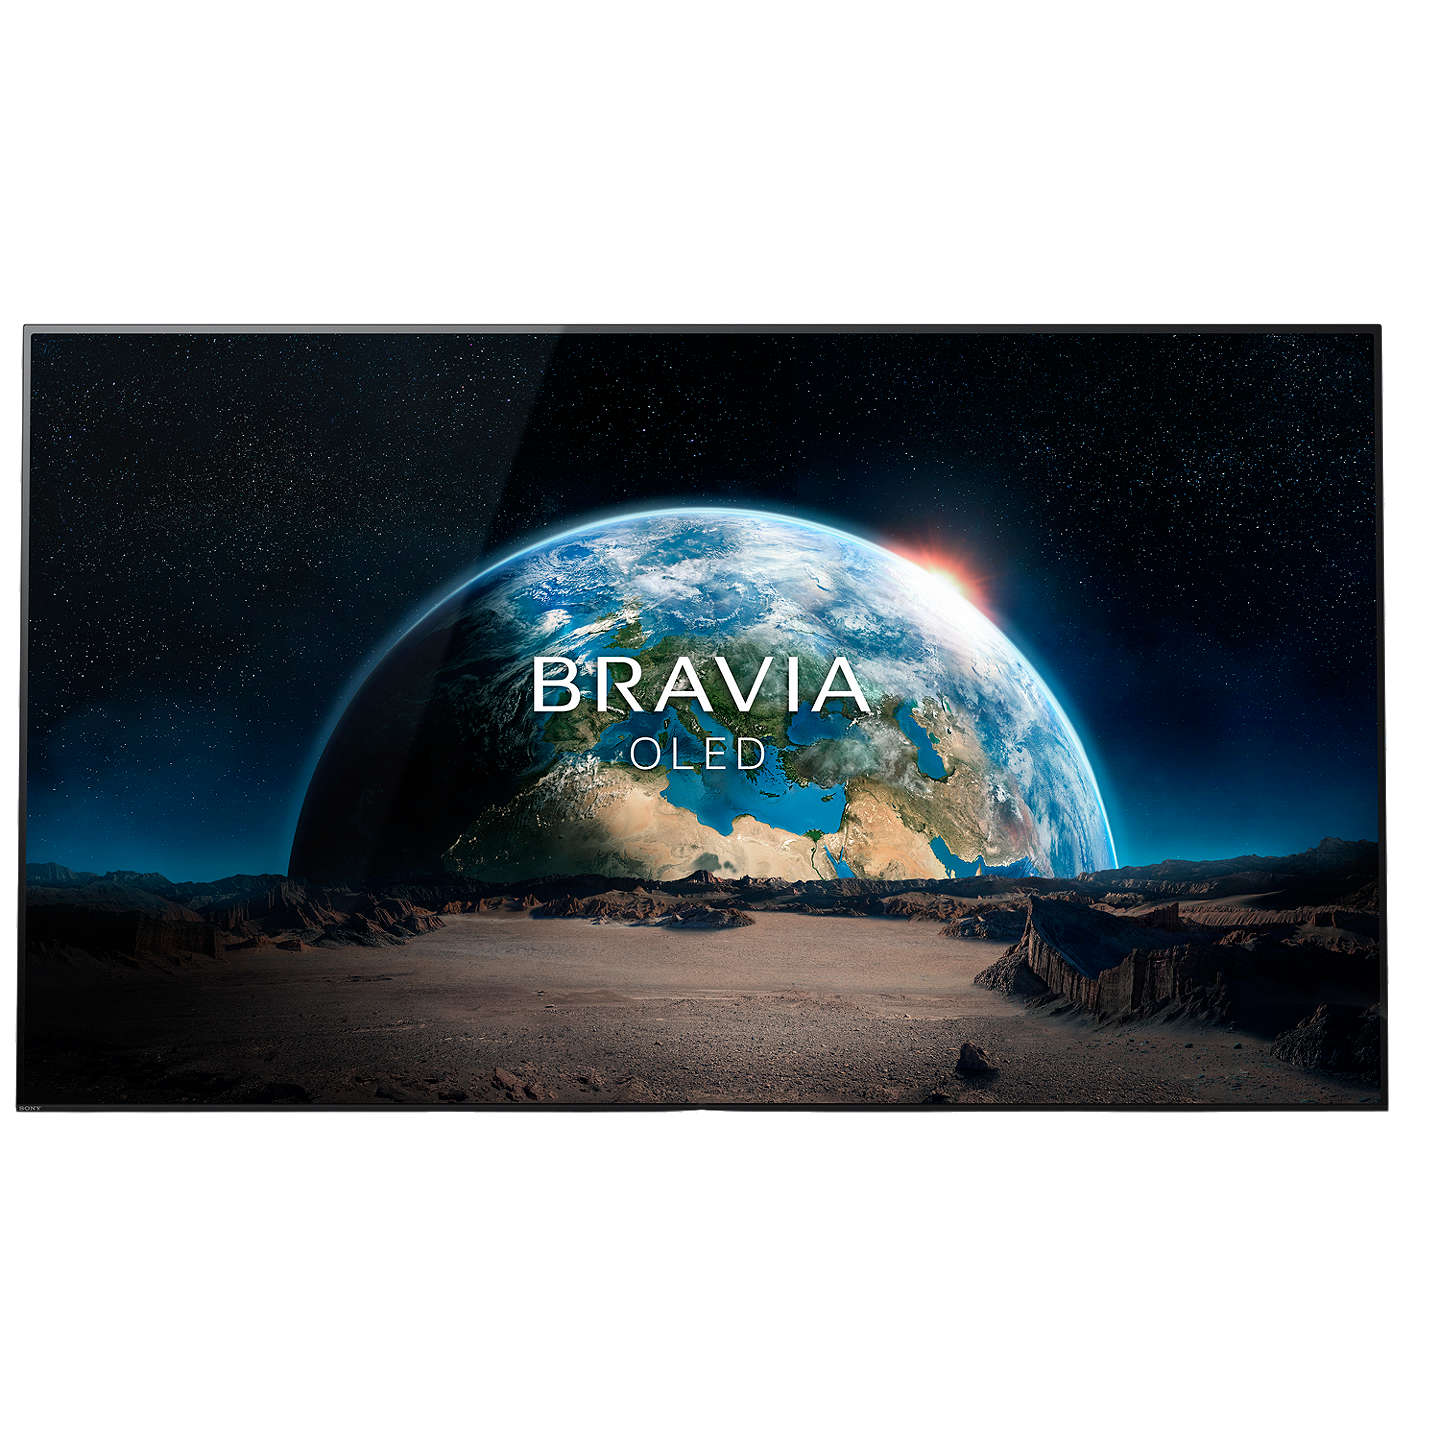 "BuySony Bravia KD55A1 OLED HDR 4K Ultra HD Smart Android TV, 55"" with Freeview HD, Youview, Acoustic Surface & One Slate Design, Black Online at johnlewis.com"